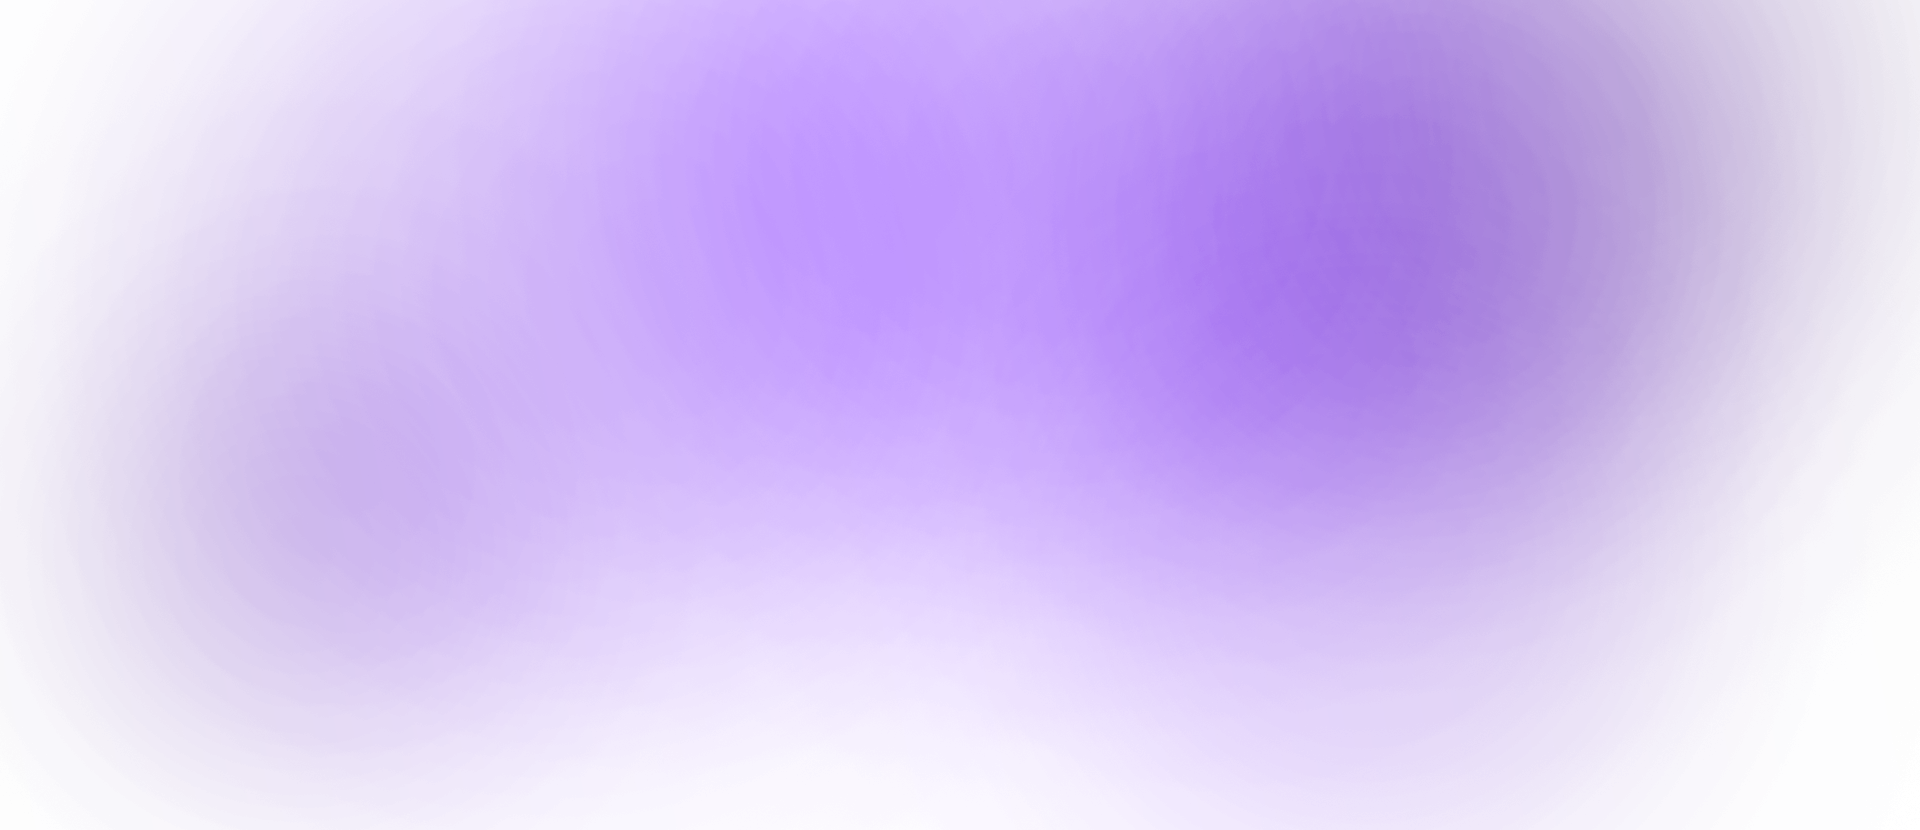 AGON_AG254FG_FV_FW_PROTECTION_BACKGROUND.png